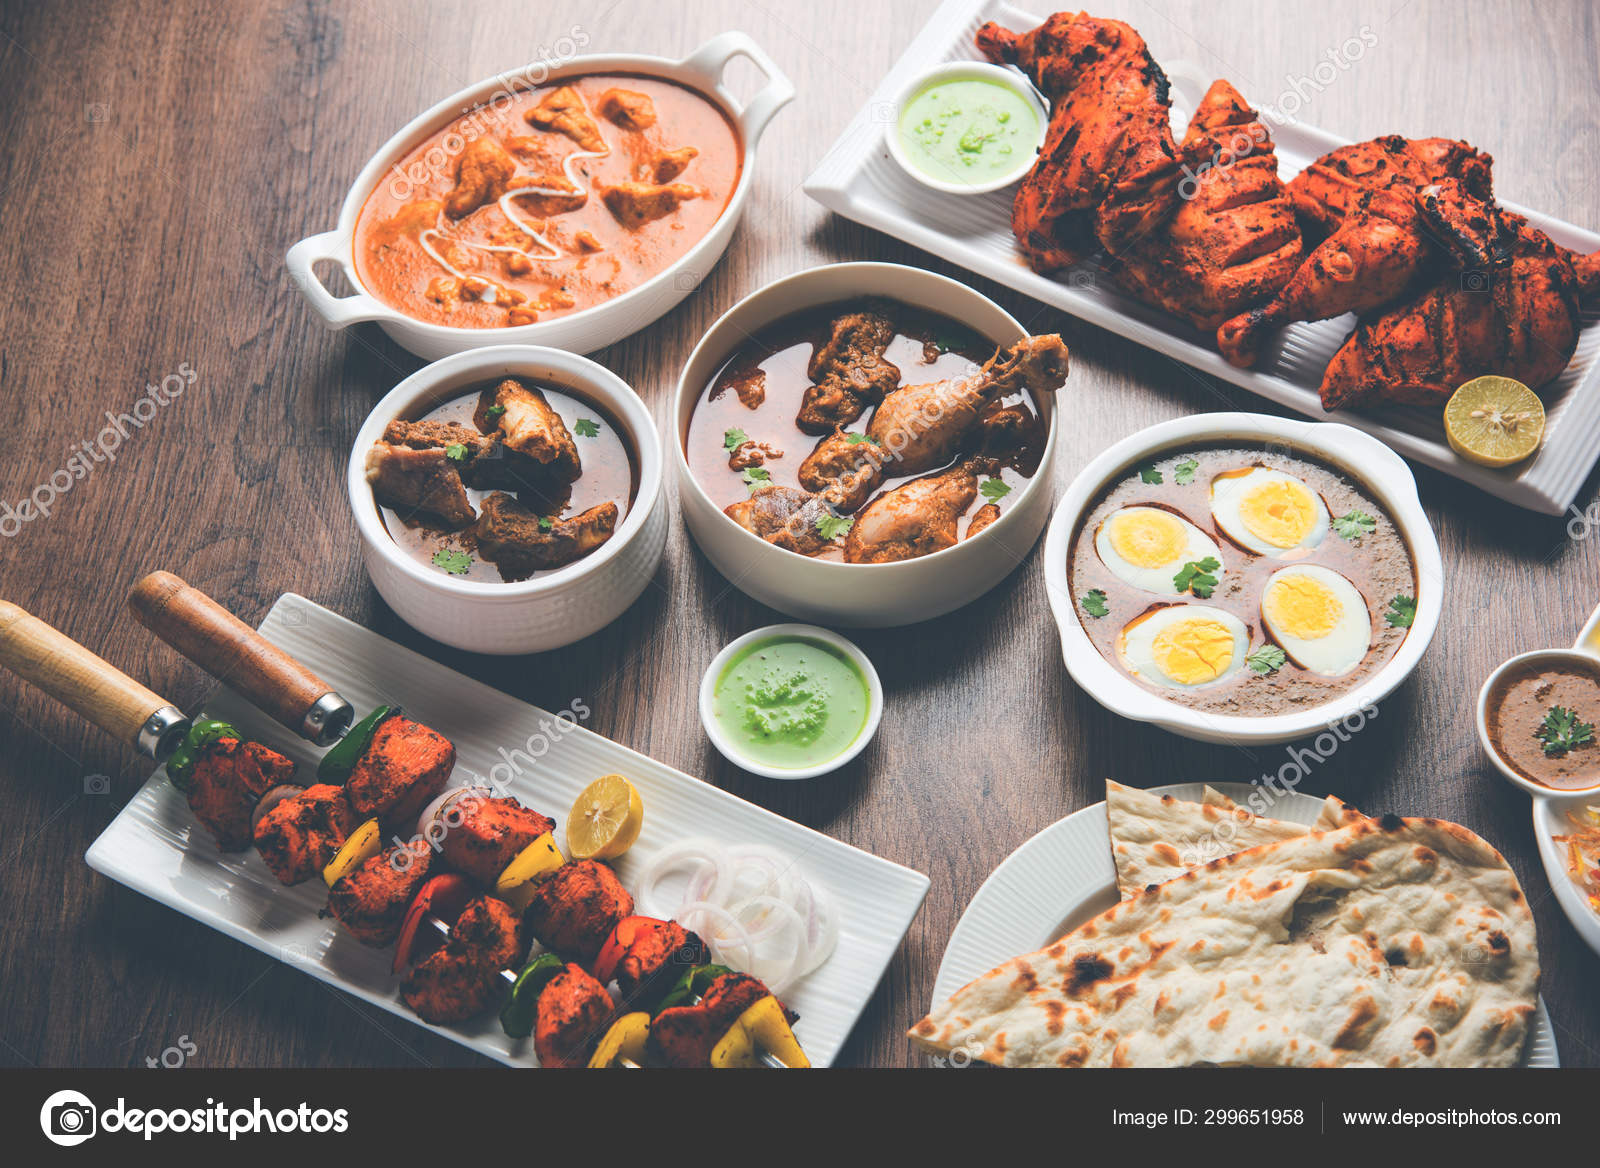 Assorted Indian Non Vegetarian Food Recipe Served Group Includes Chicken Stock Photo C Arundhati Callistainteriors In 299651958